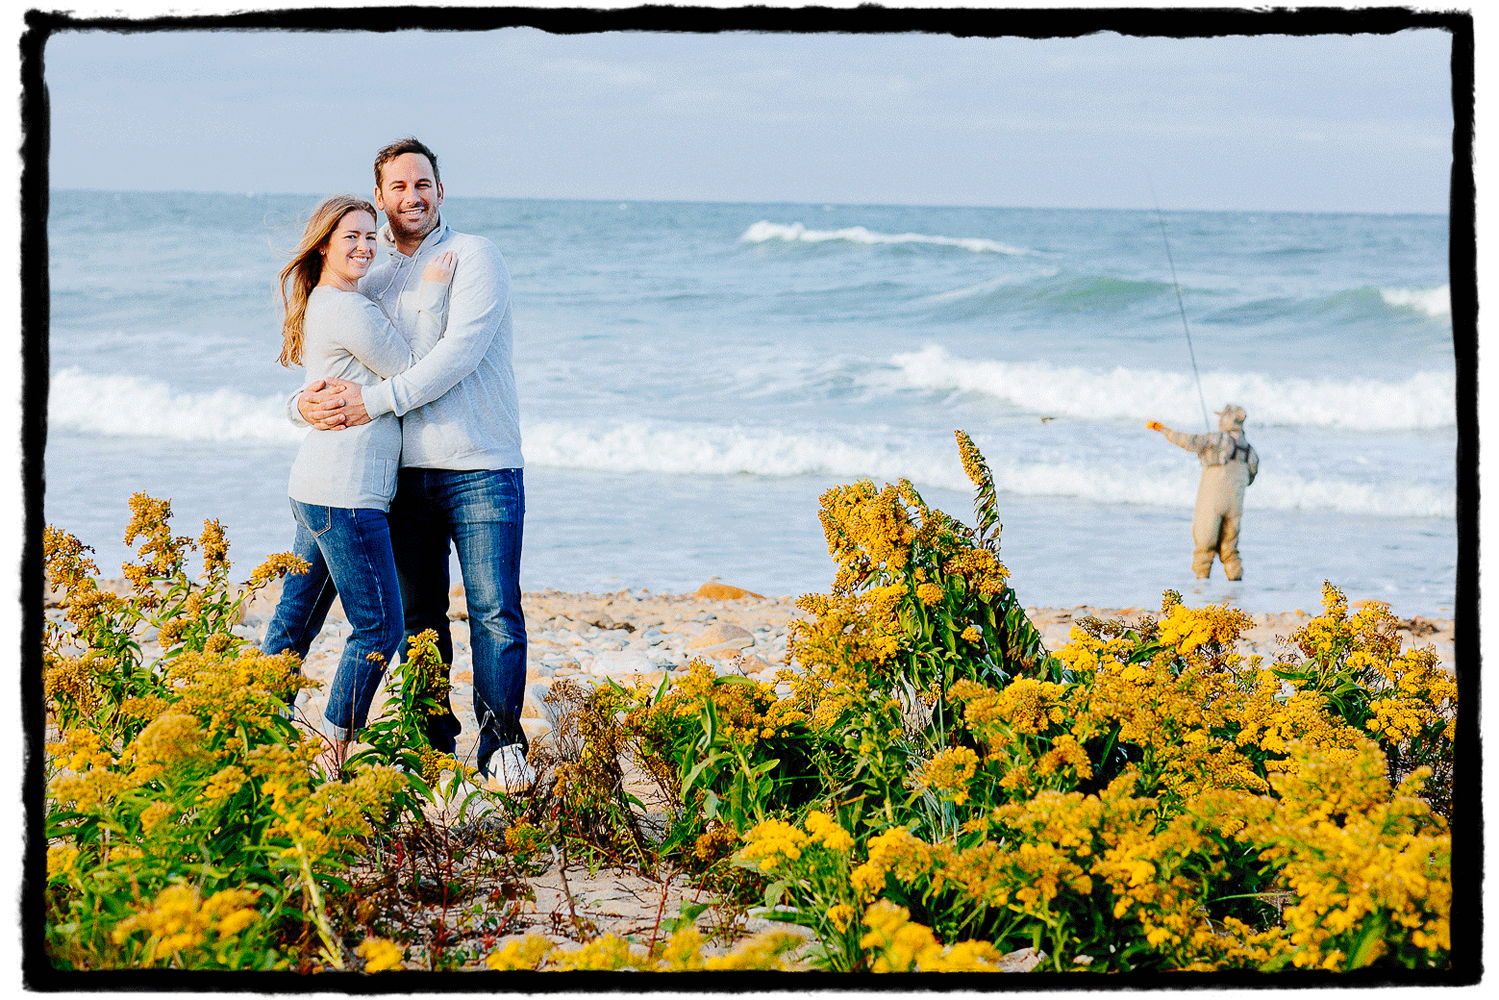 Engagement Portraits: Gina & Jamie enjoy the salty sea air in Montauk, Long Island.